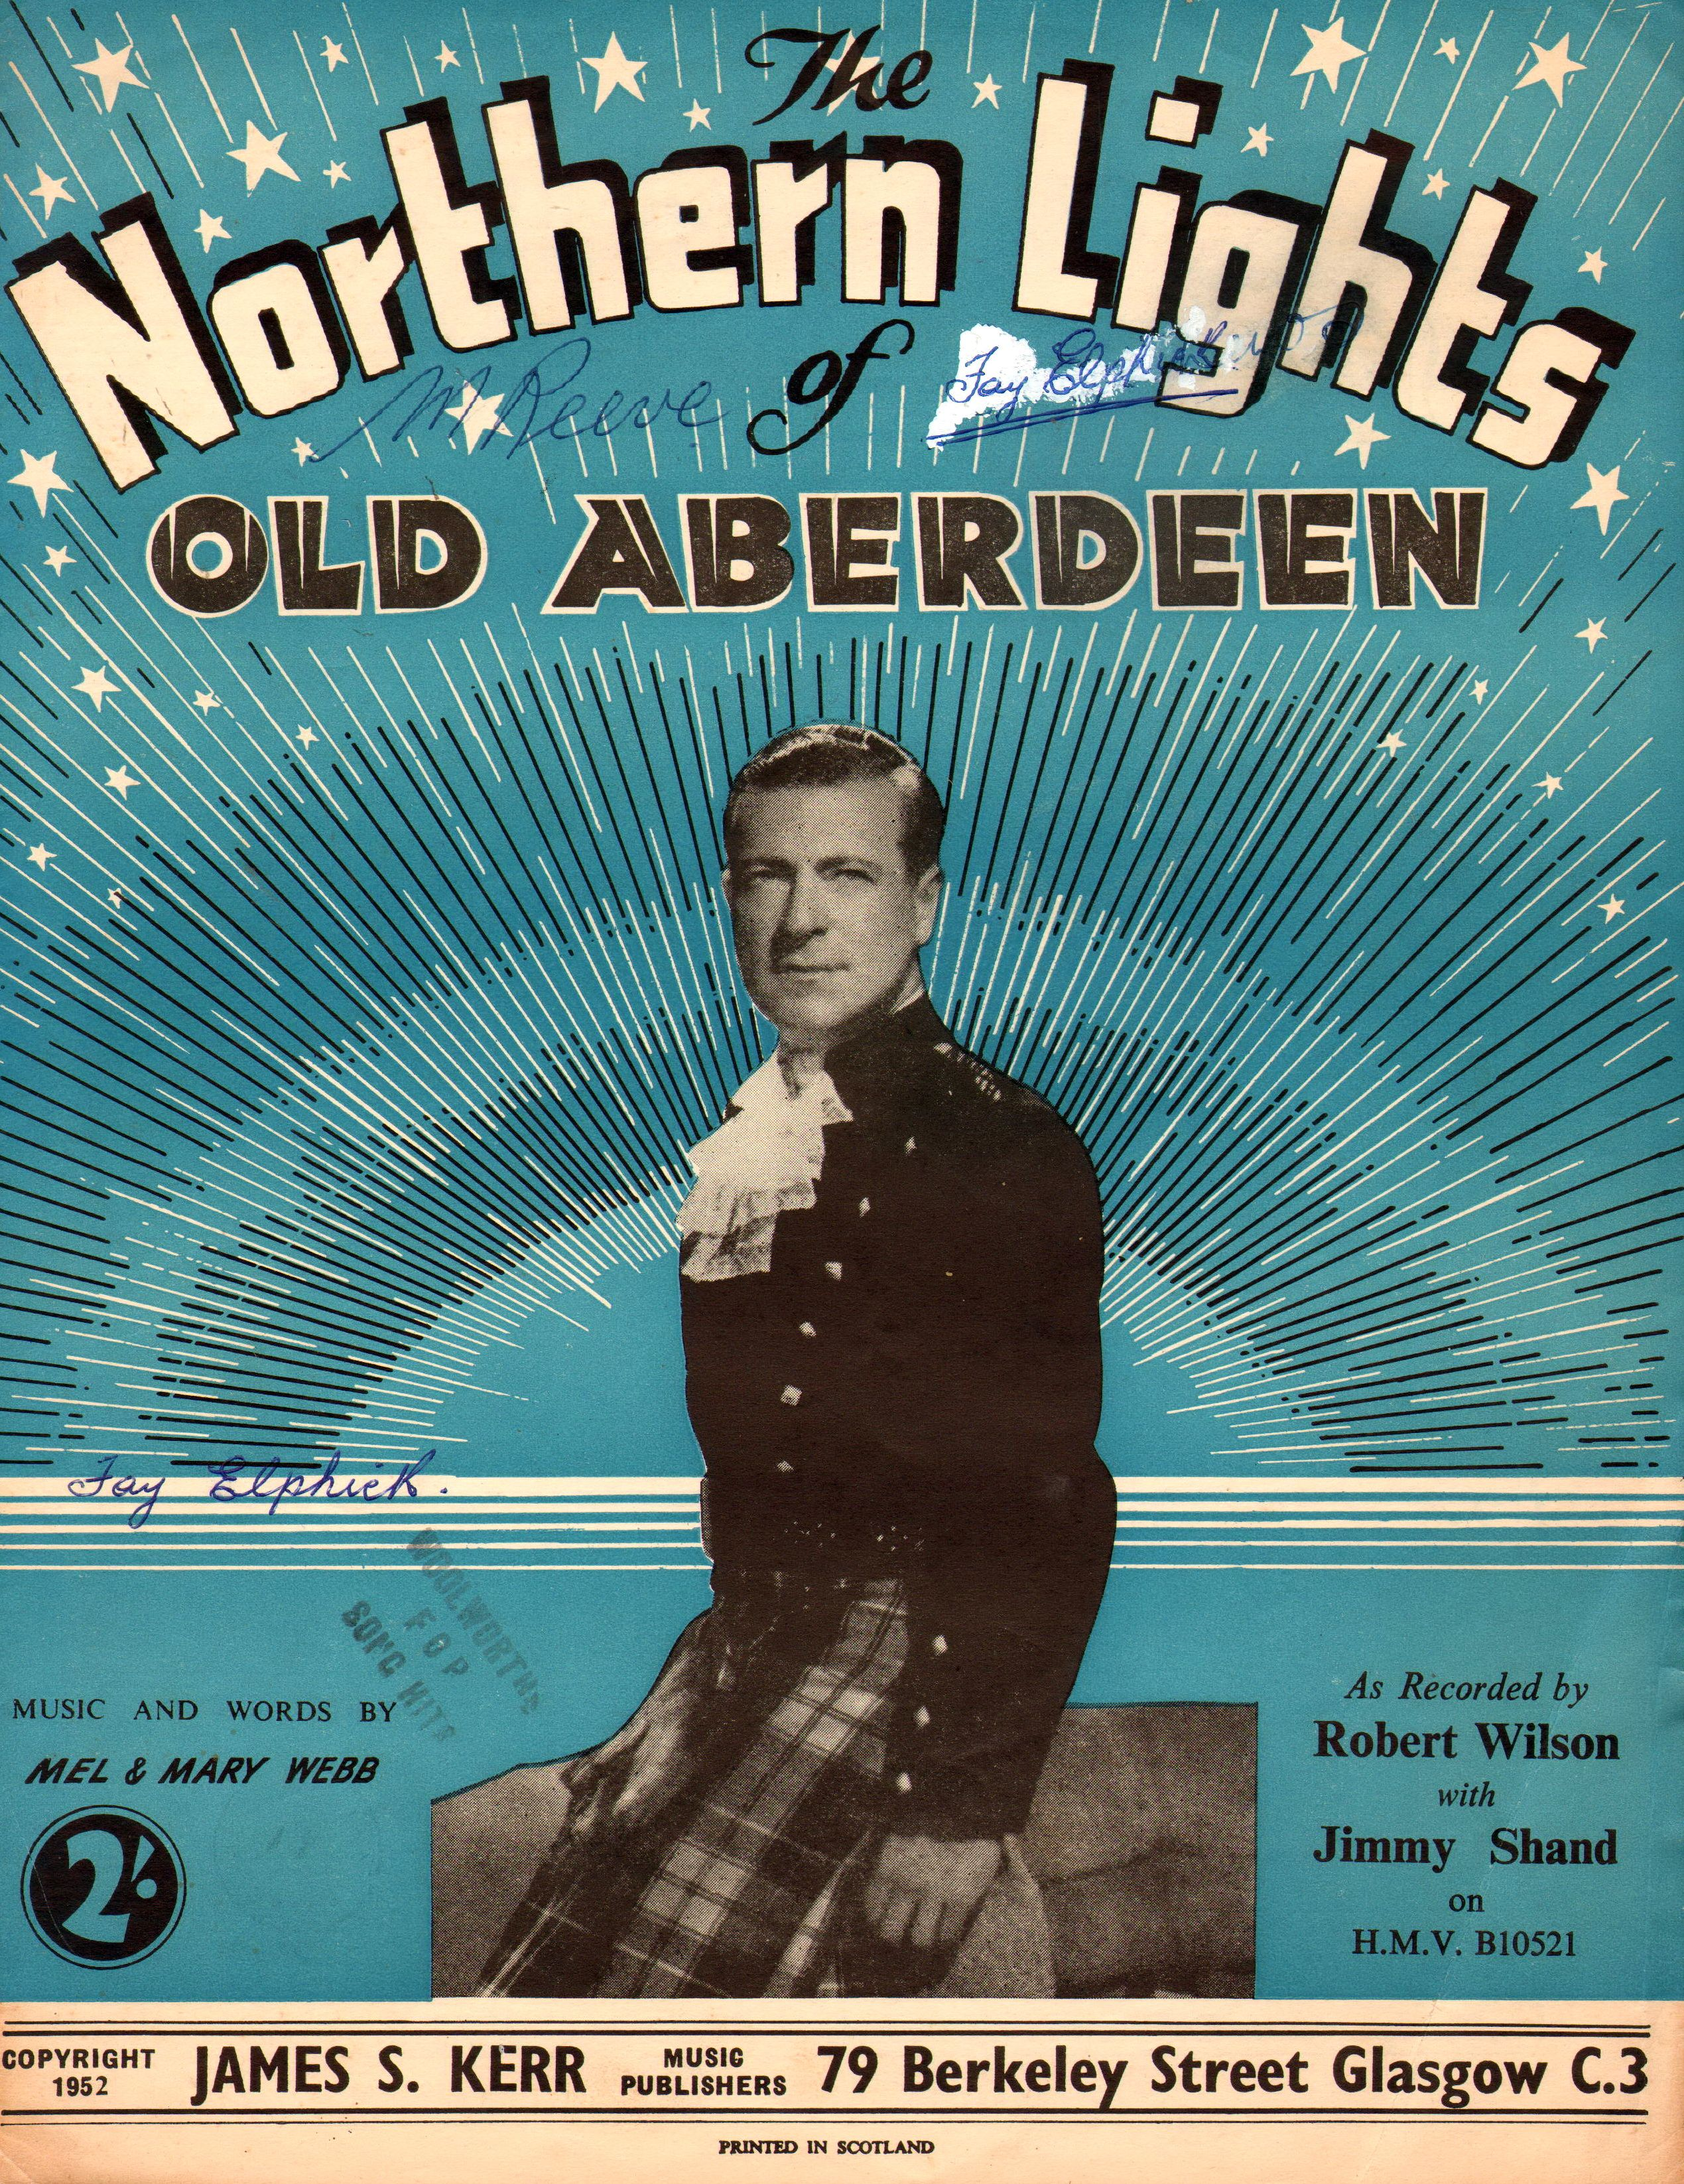 Bedroom detached house for sale in crathie ballater aberdeenshire - The Northern Lights Of Old Aberdeen 1952 By Mel Mary Webb Featured Here